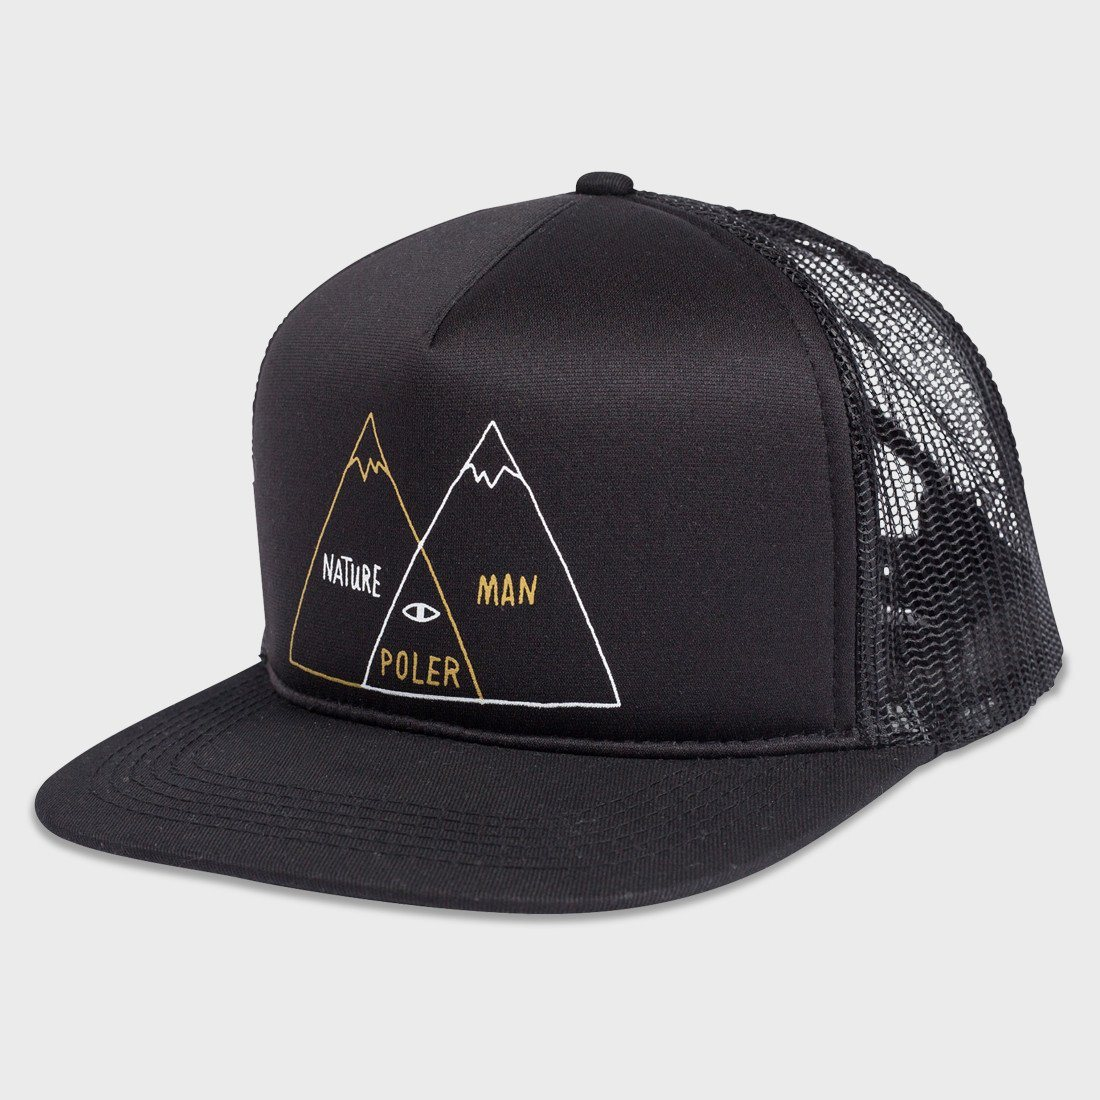 Poler Venn Trucker Hat Black